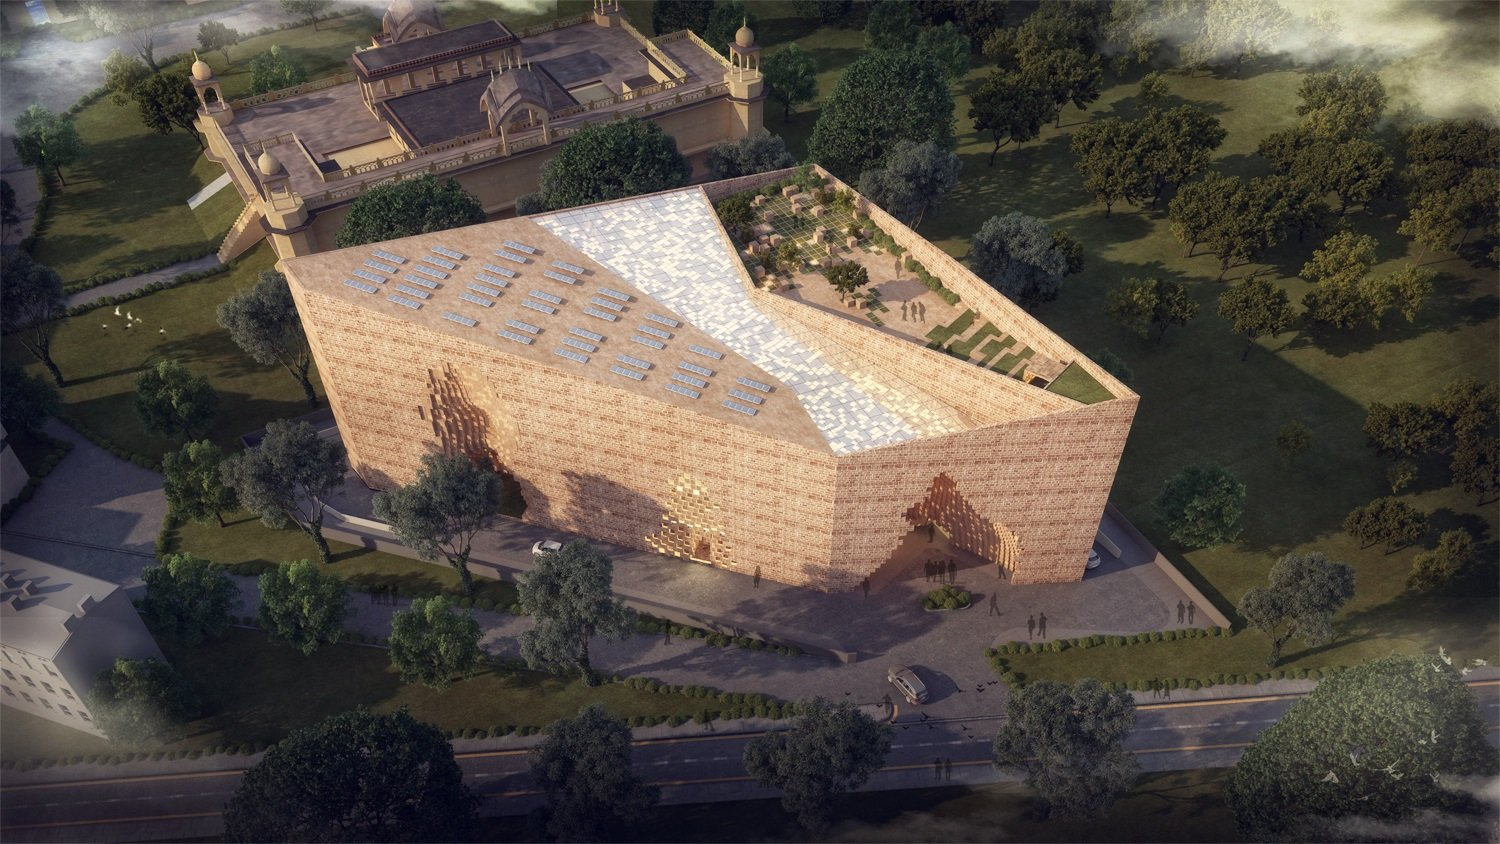 AERIAL VIEW SANJAY PURI ARCHITECTS